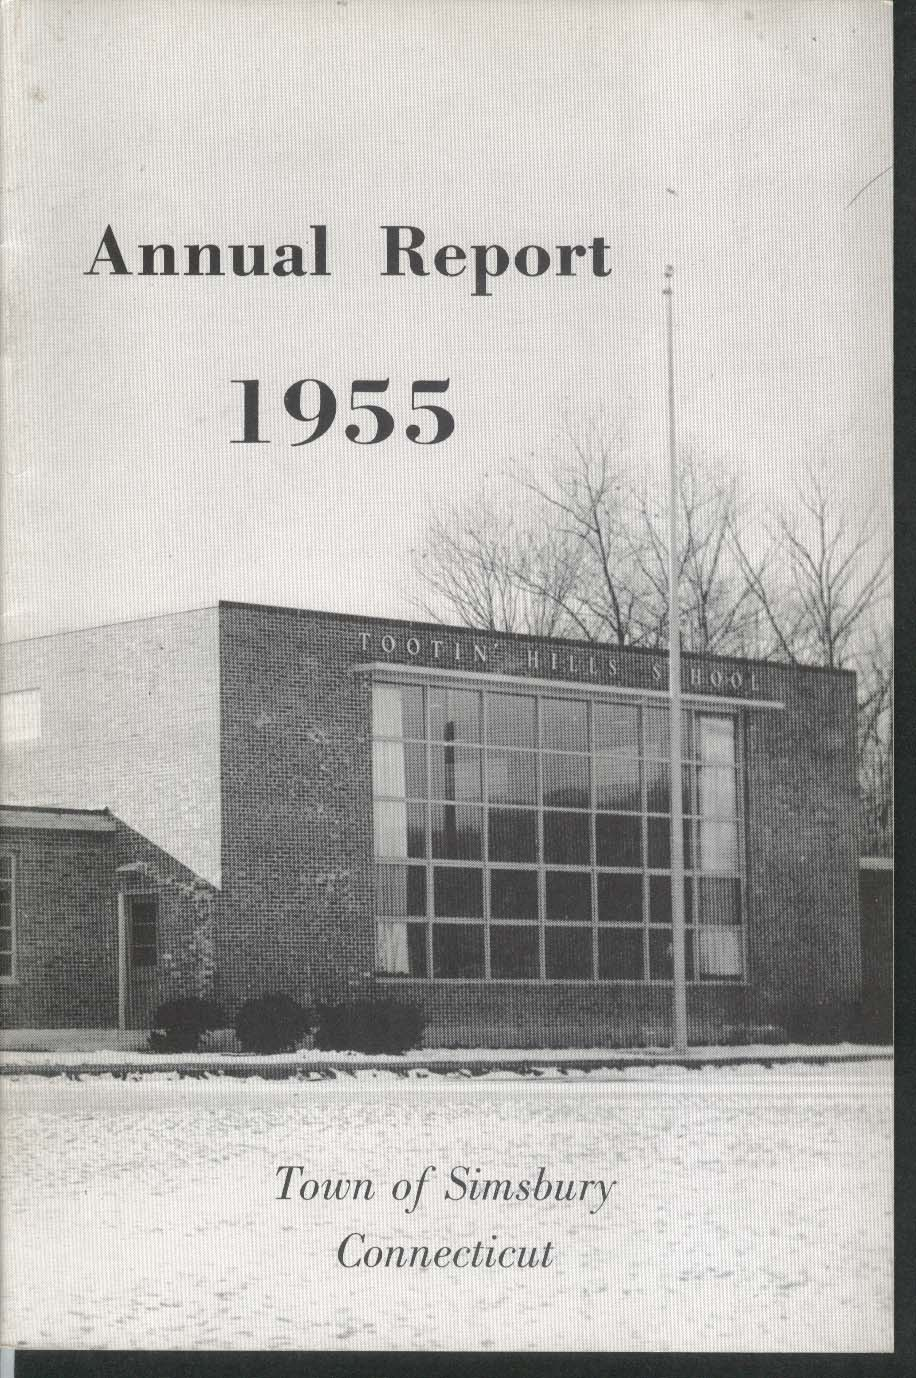 Simsbury Connecticut Annual Report 1955